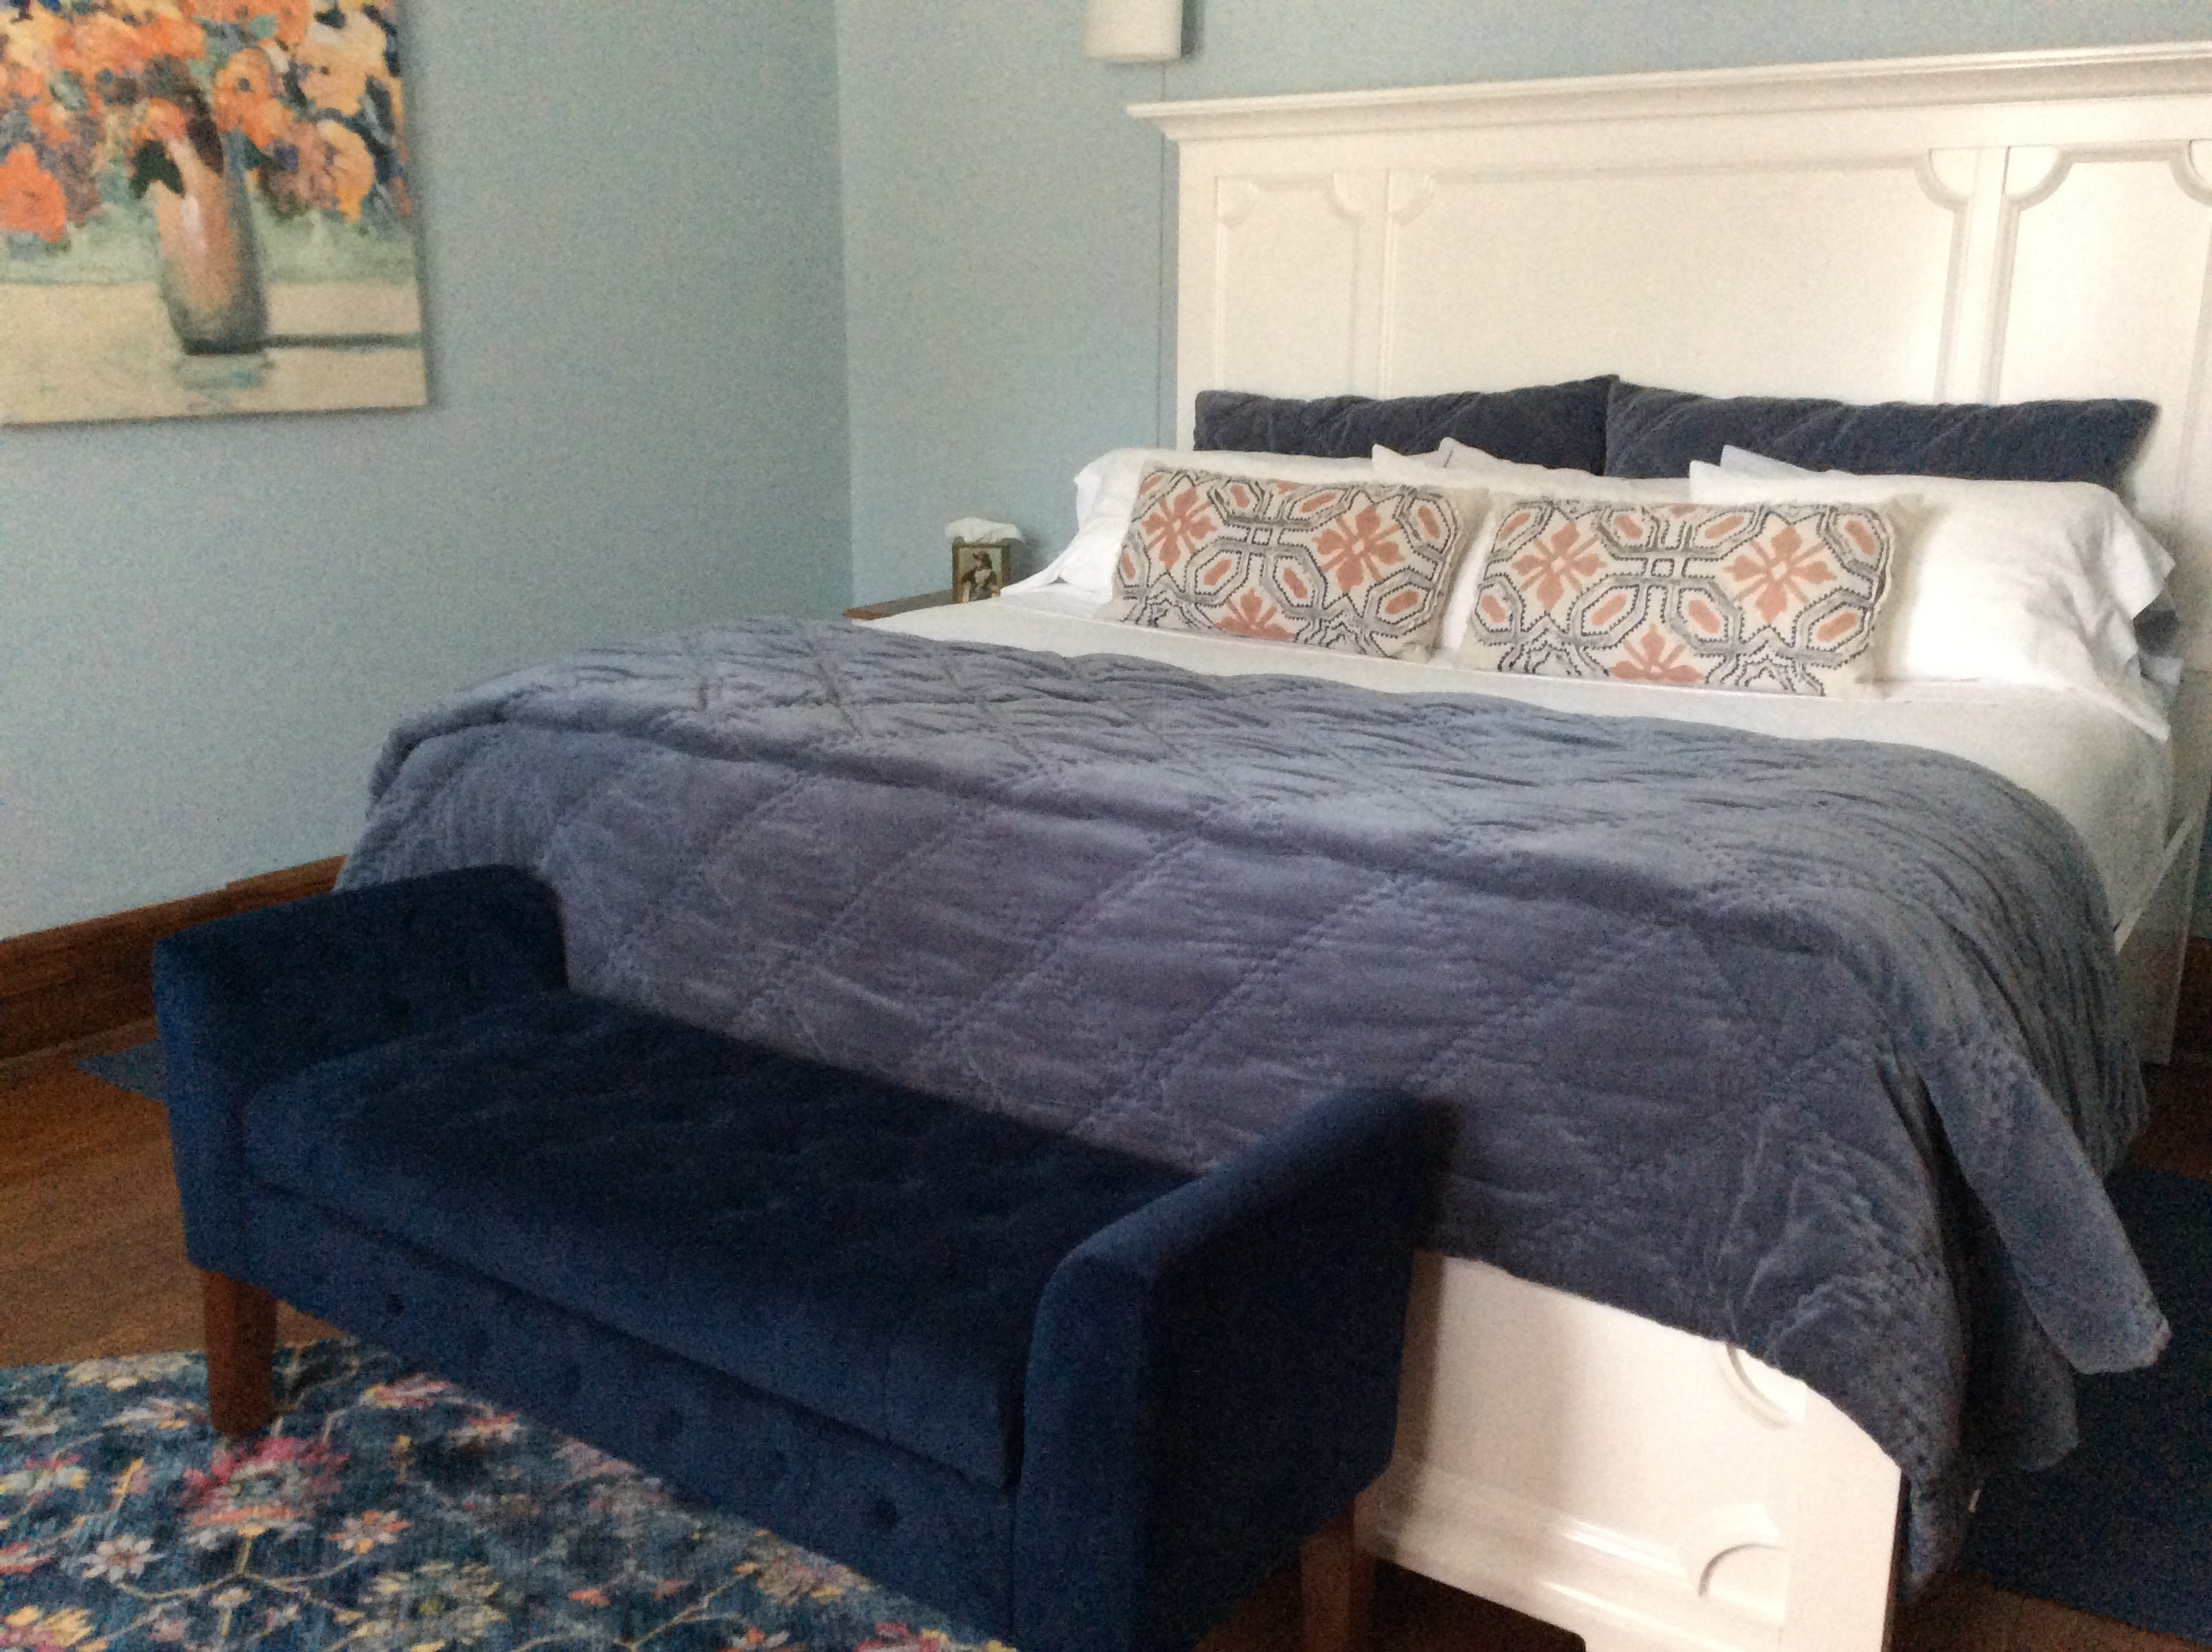 Large bed with white headboard and blue blanket